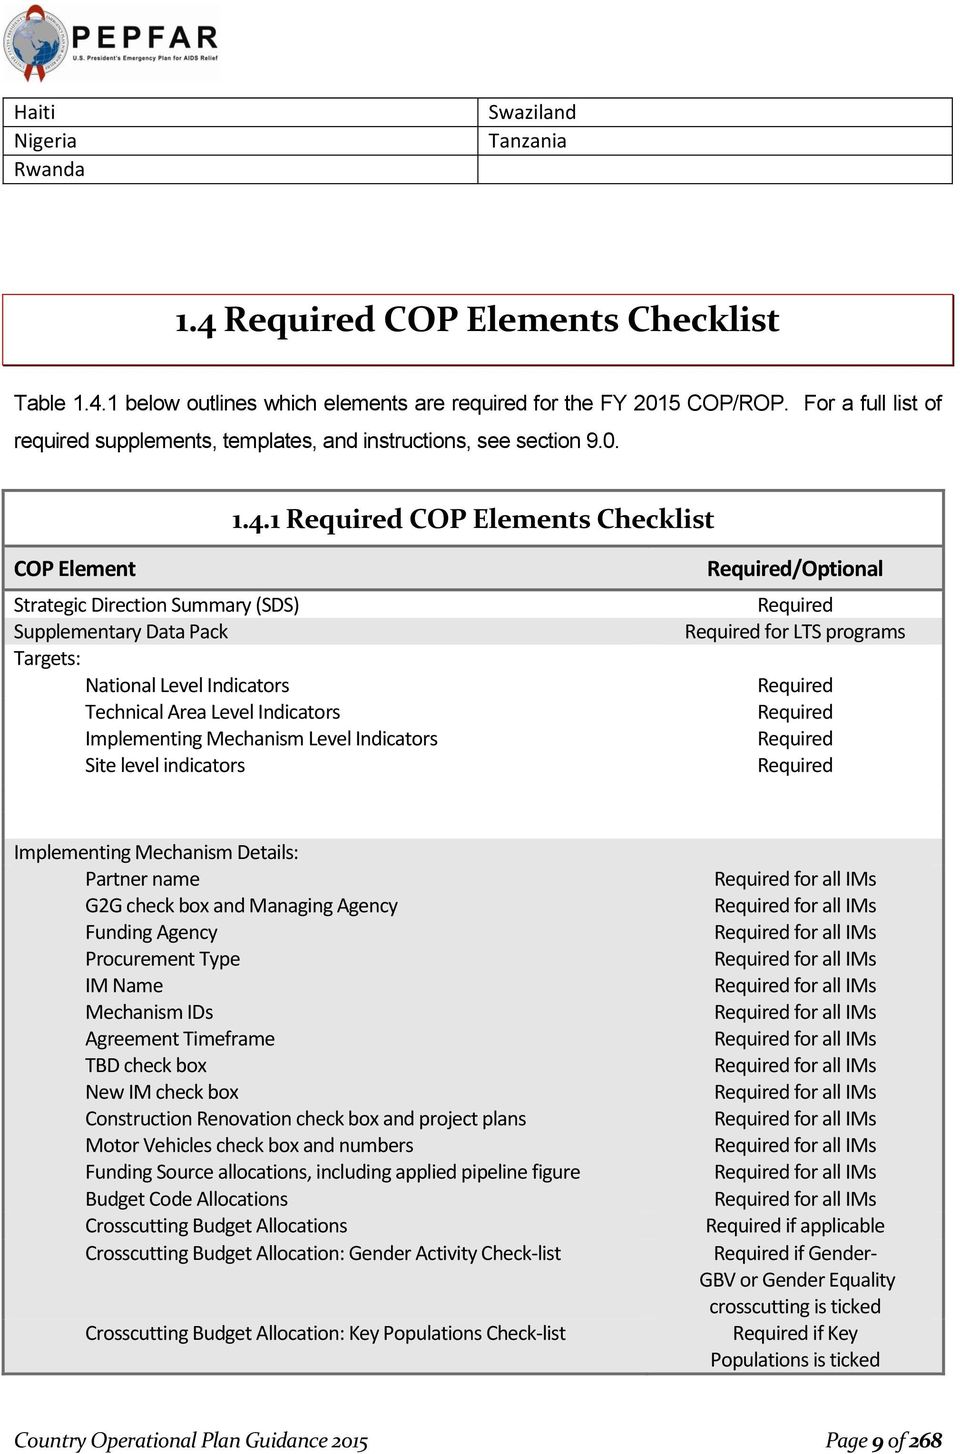 1 Required COP Elements Checklist COP Element Strategic Direction Summary (SDS) Supplementary Data Pack Targets: National Level Indicators Technical Area Level Indicators Implementing Mechanism Level